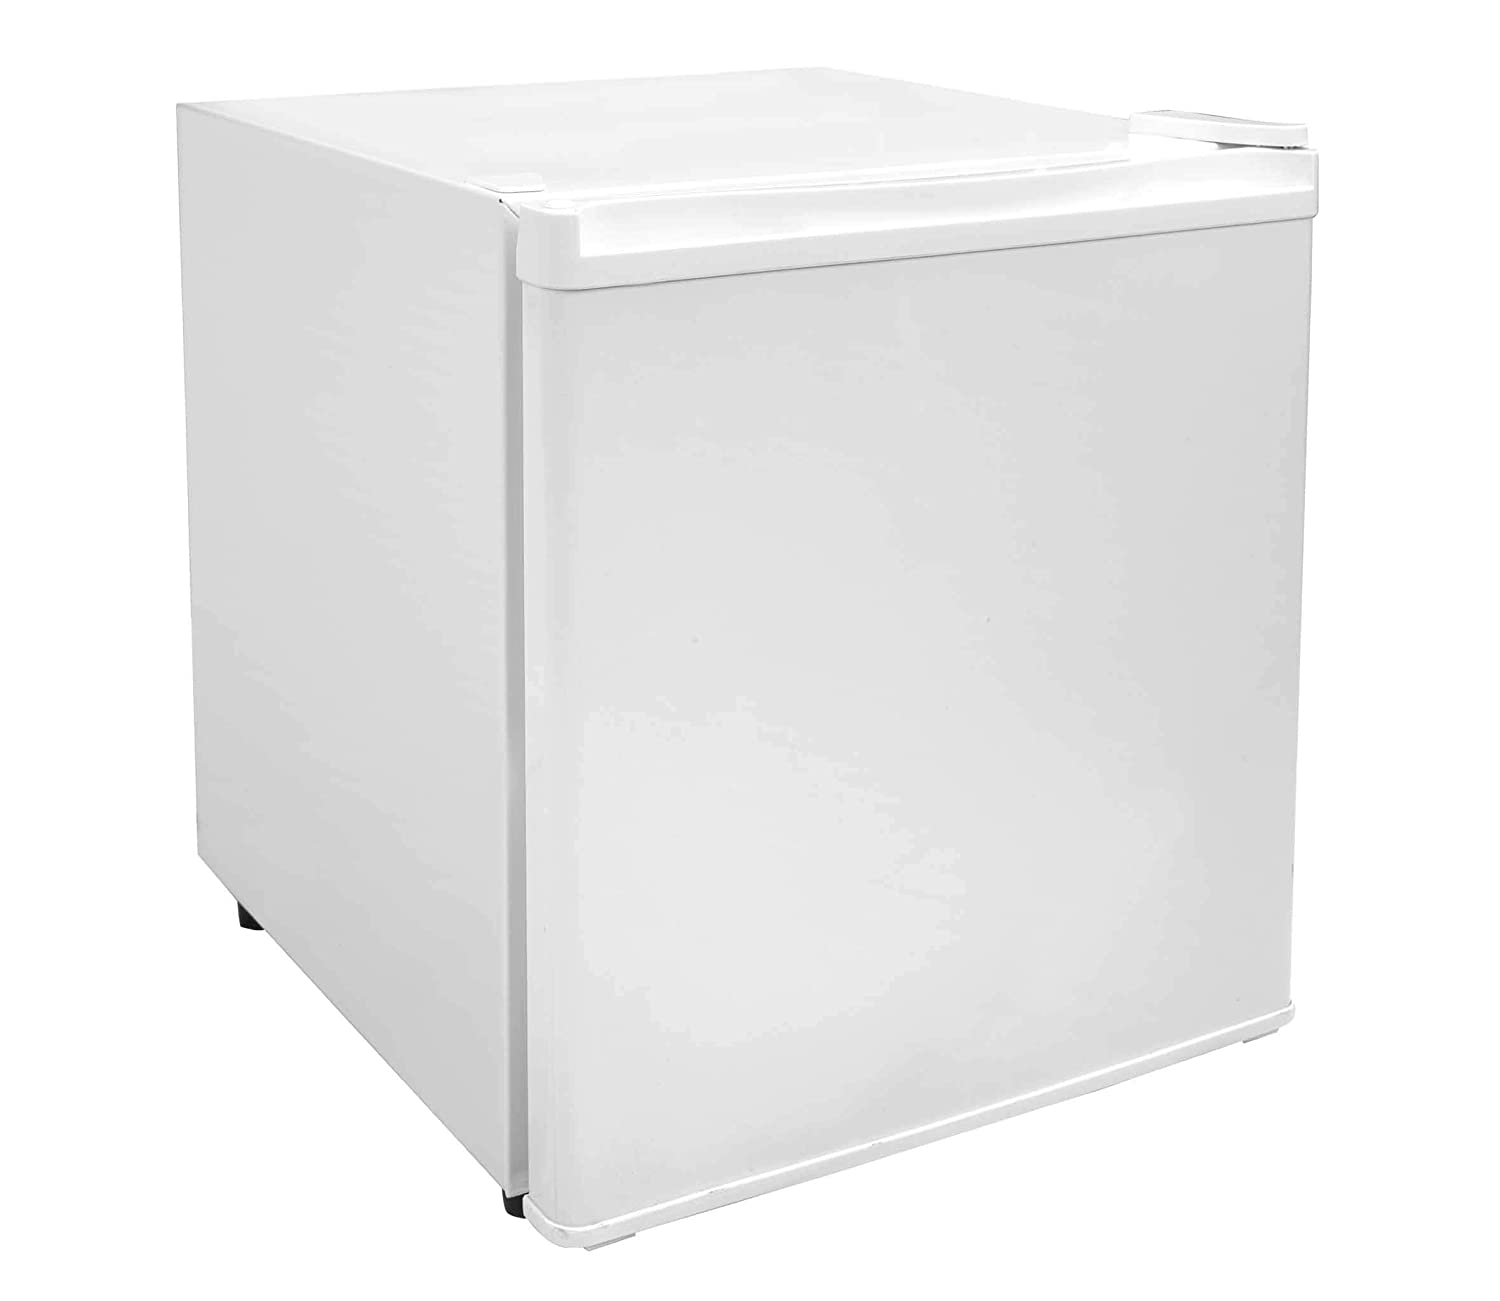 Lacor 69075 69075-Refrigerador Mini-Bar, Negro: Amazon.es: Hogar